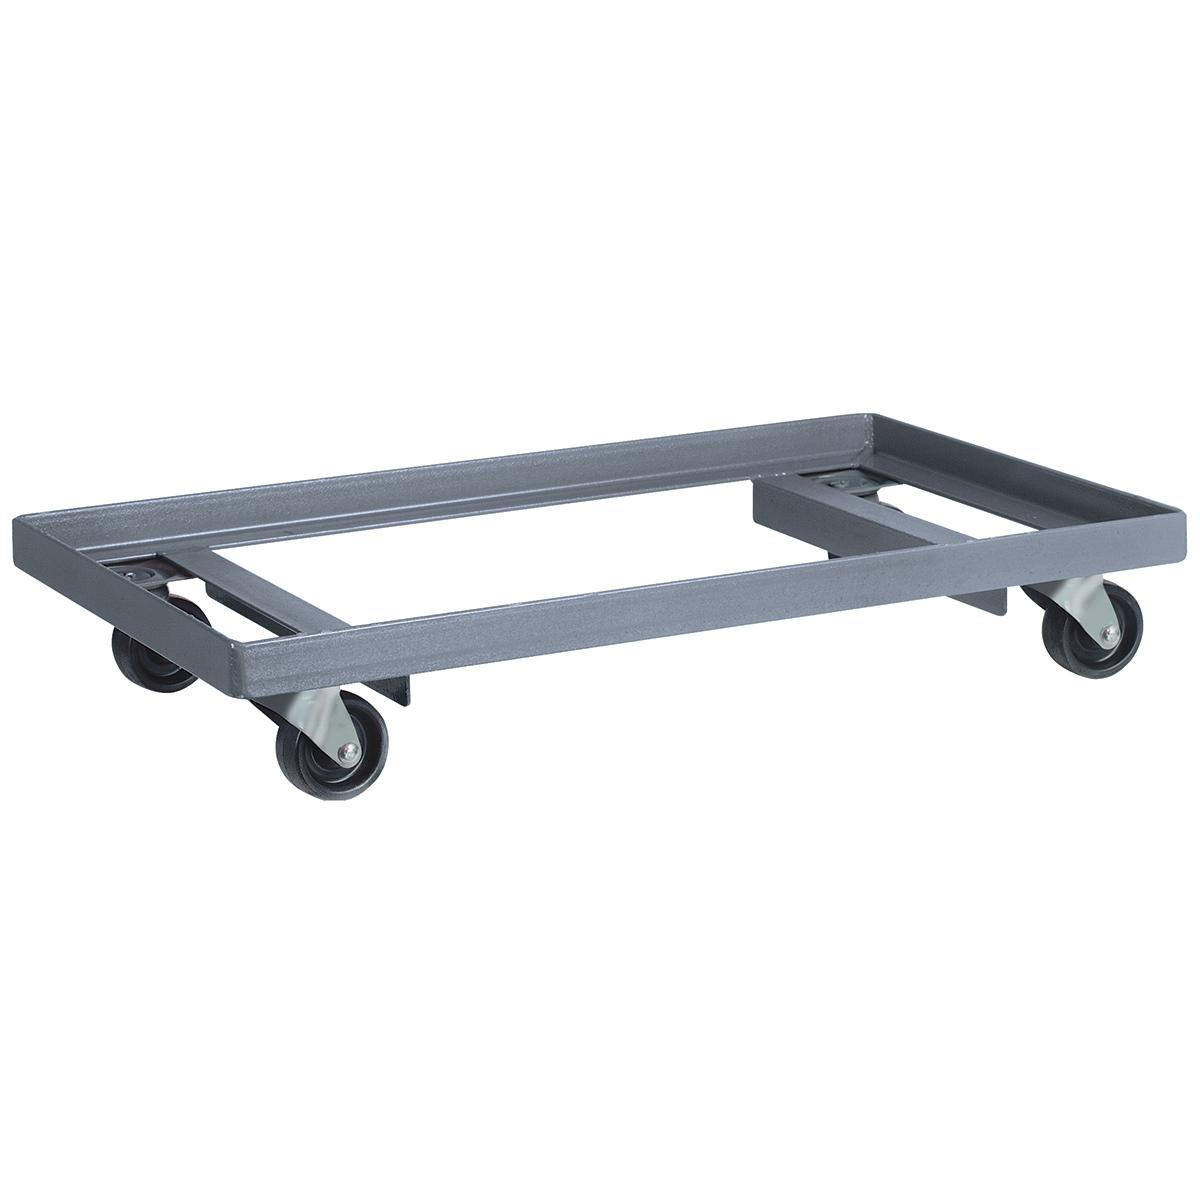 Item DISCONTINUED by Manufacturer.  Steel Dolly, 24x36, N/A4